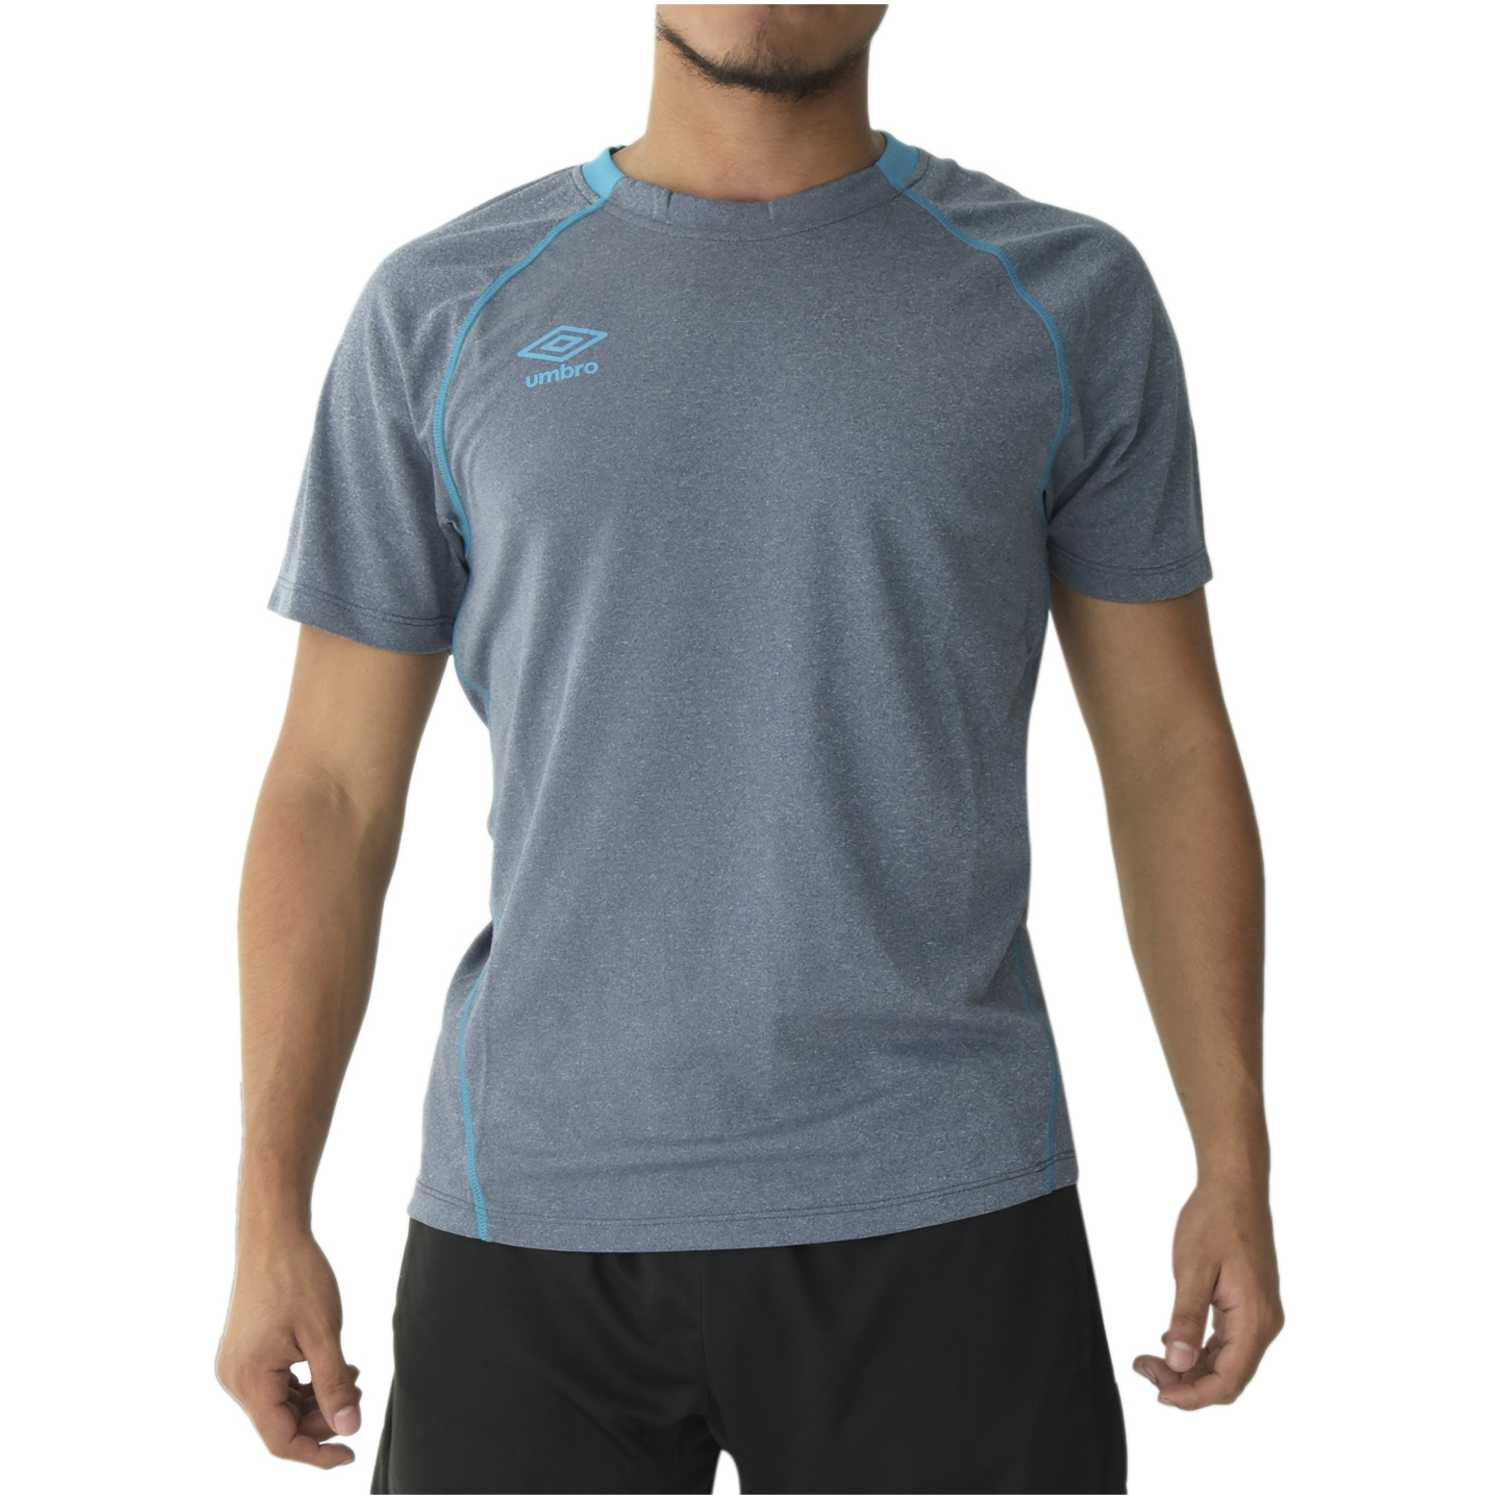 Camiseta de Hombre Umbro Navy training jersey